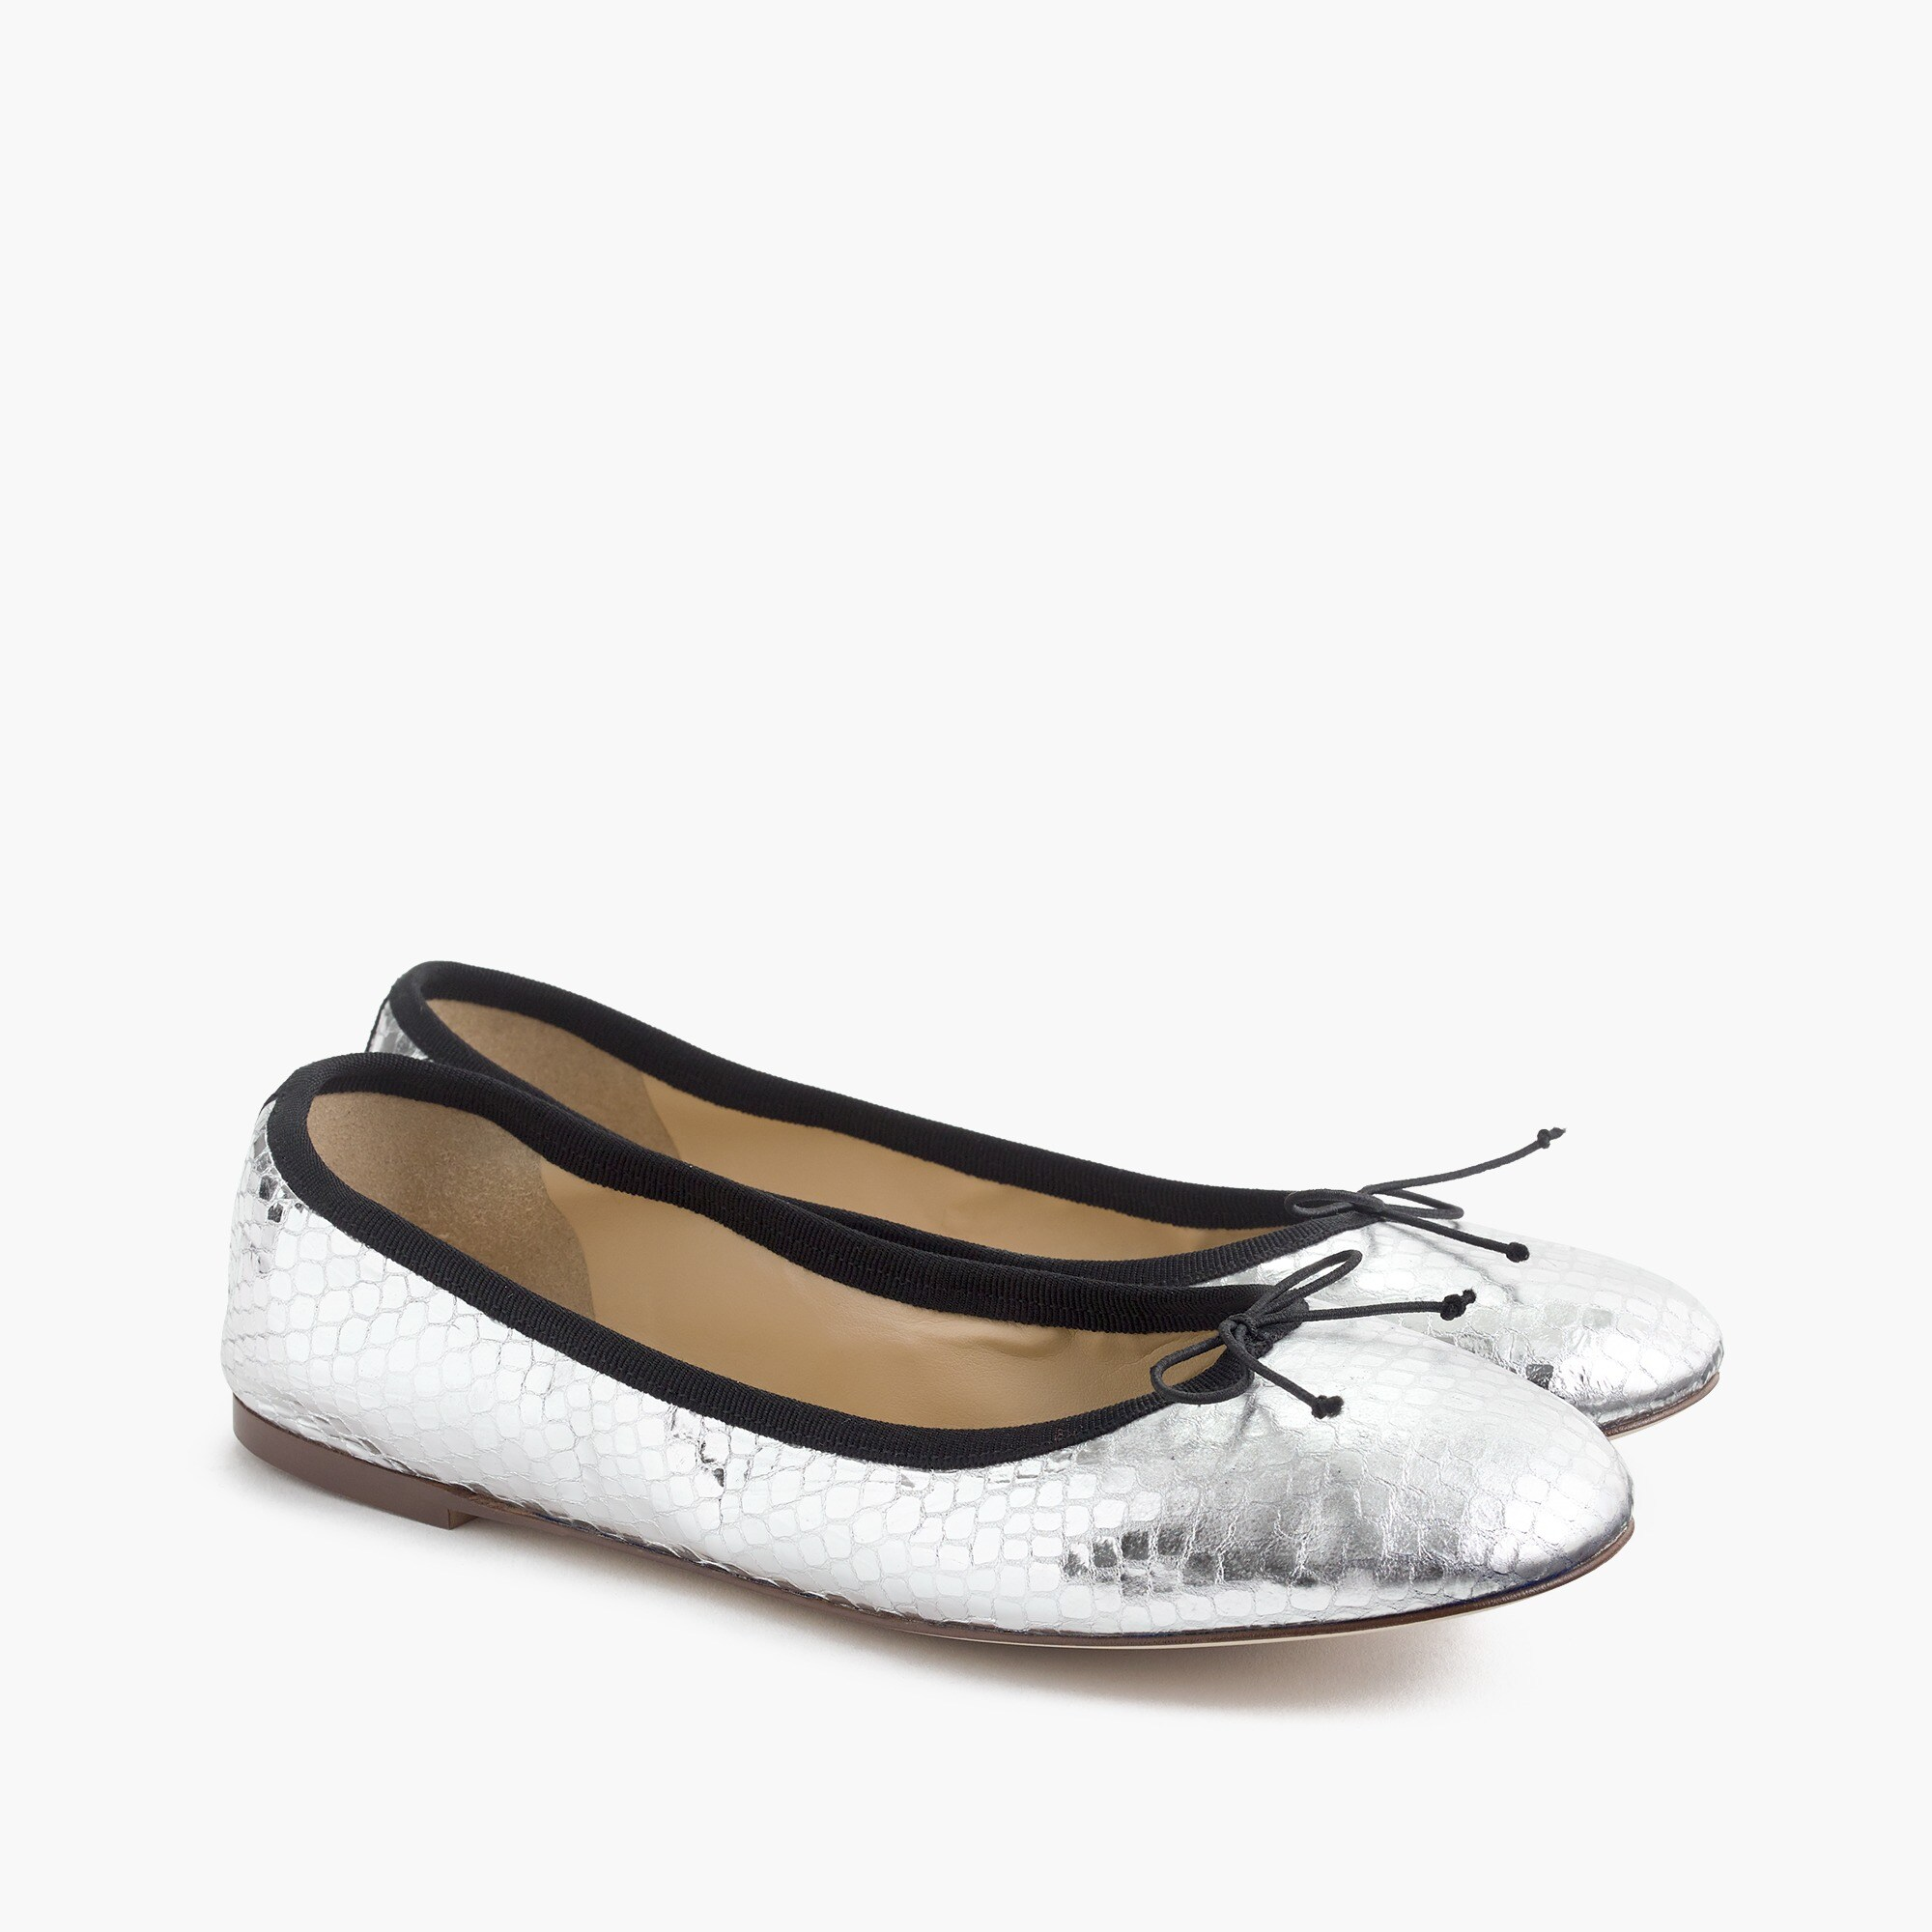 women's evie ballet flats in mirrored silver - women's footwear